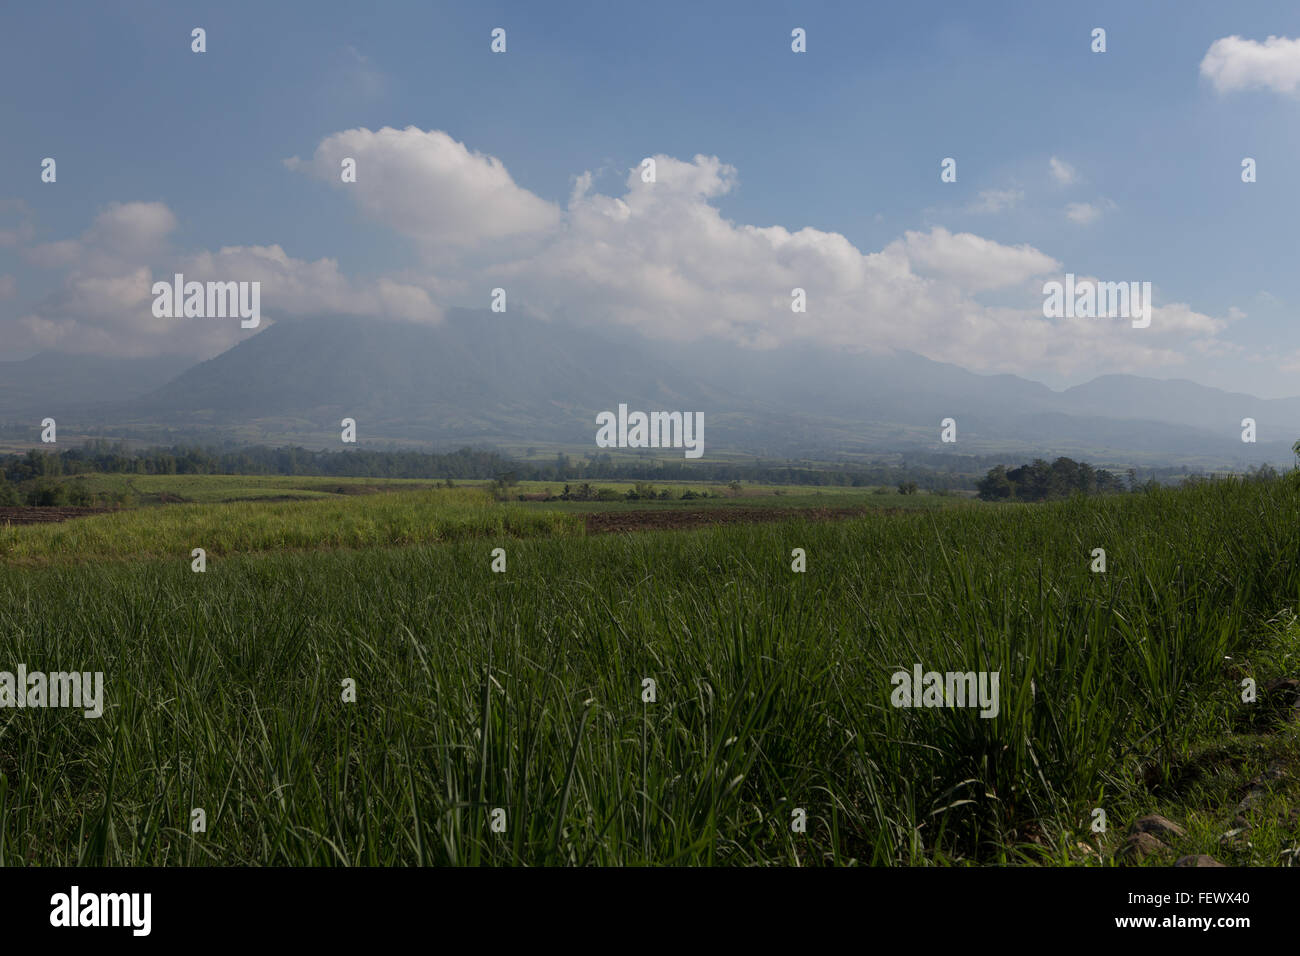 Sugarcane,one of the main agricultural industries on the Island of Negros,Philippines - Stock Image